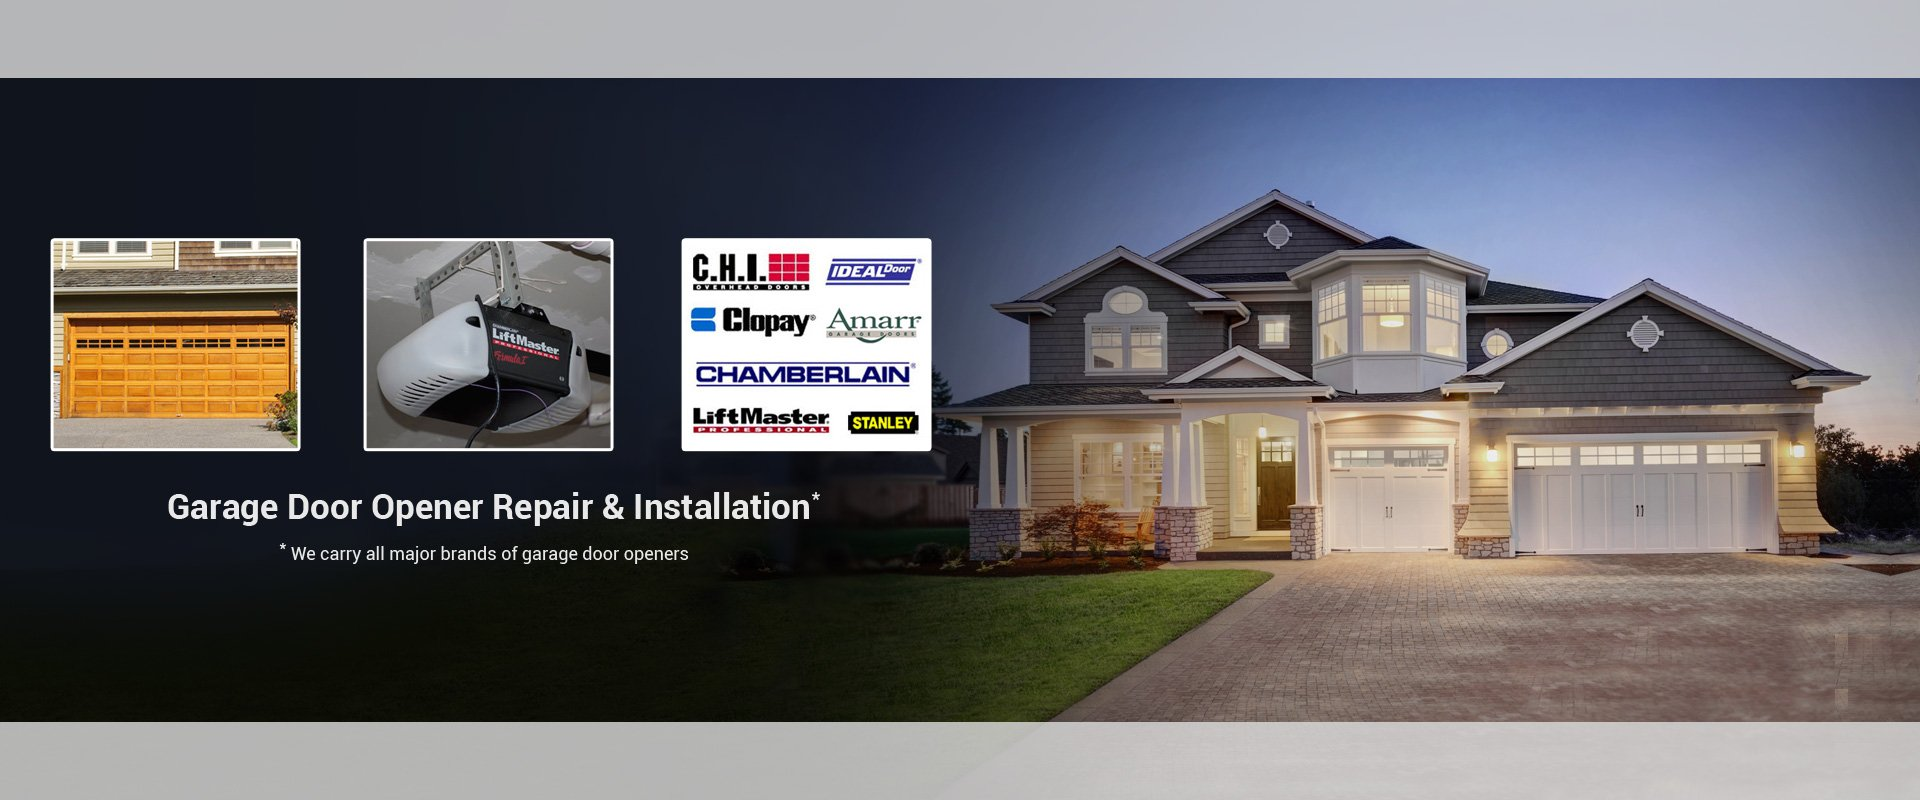 Garage Door Opener Repair And Installation Services Oxnard CA